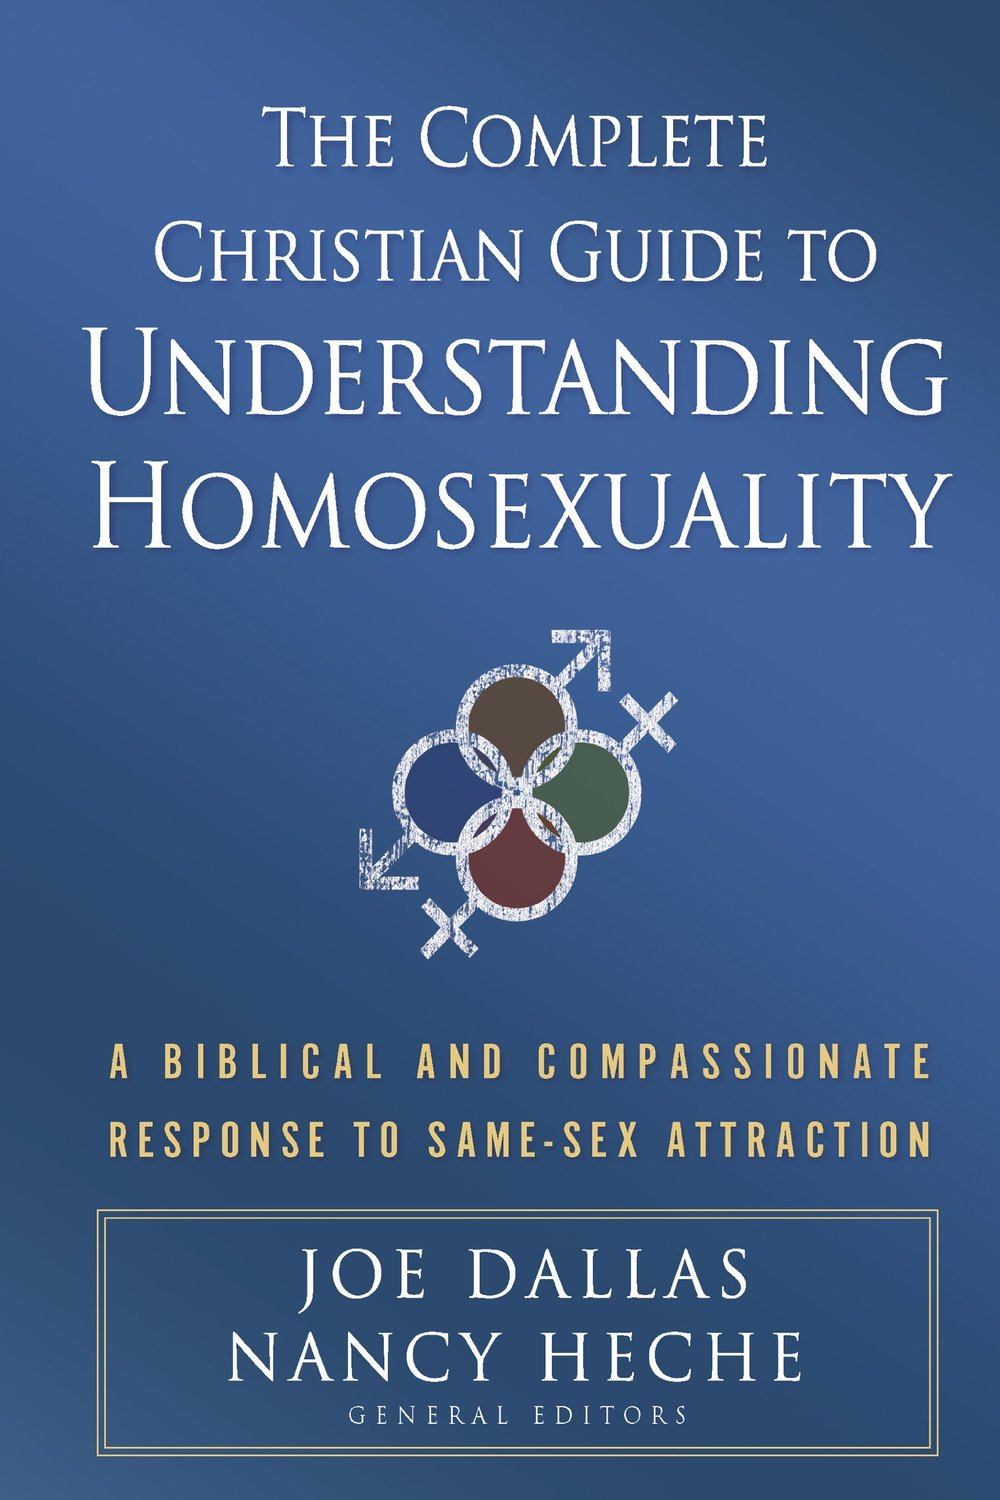 The Complete Guide - To Understanding Homosexuality